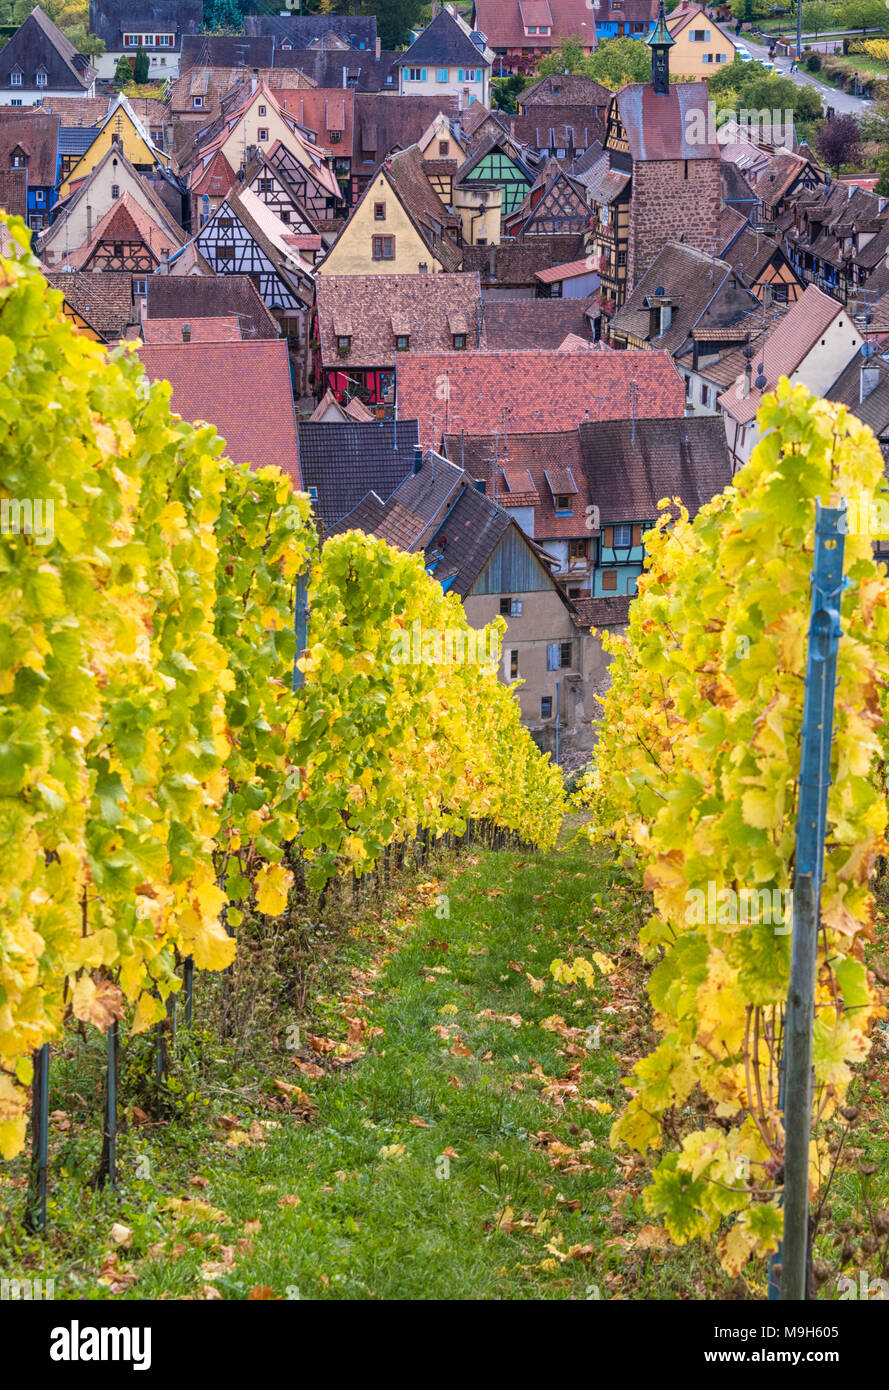 View through the vineyards towards medieval town of Riquewihr, Alsatian Wine Route, France - Stock Image